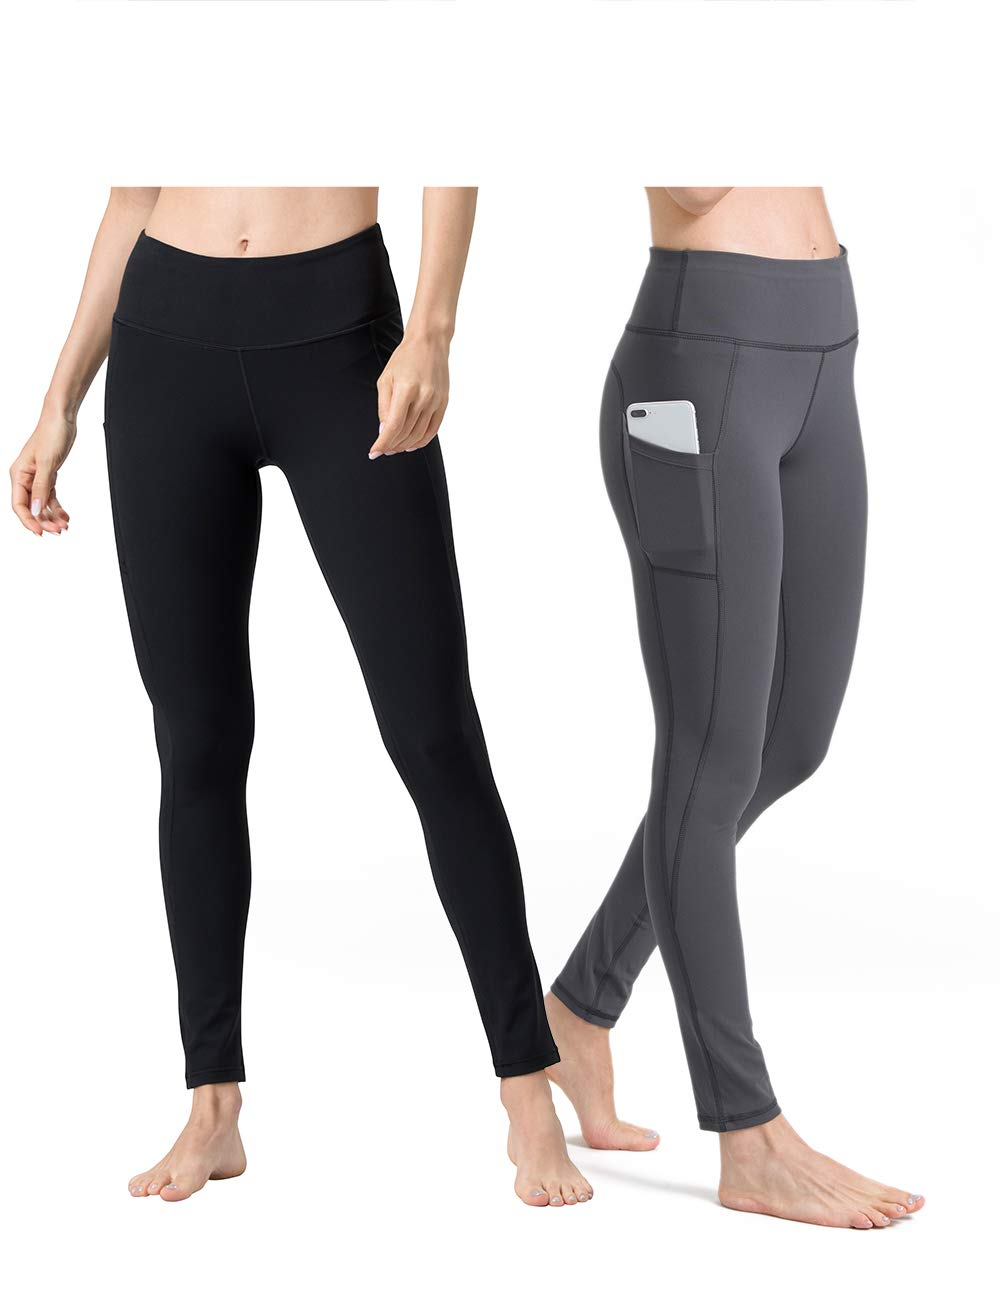 19d11d878f ALONG FIT Yoga Pants for Women mesh Leggings with Side Pockets High Waisted  Leggings product image